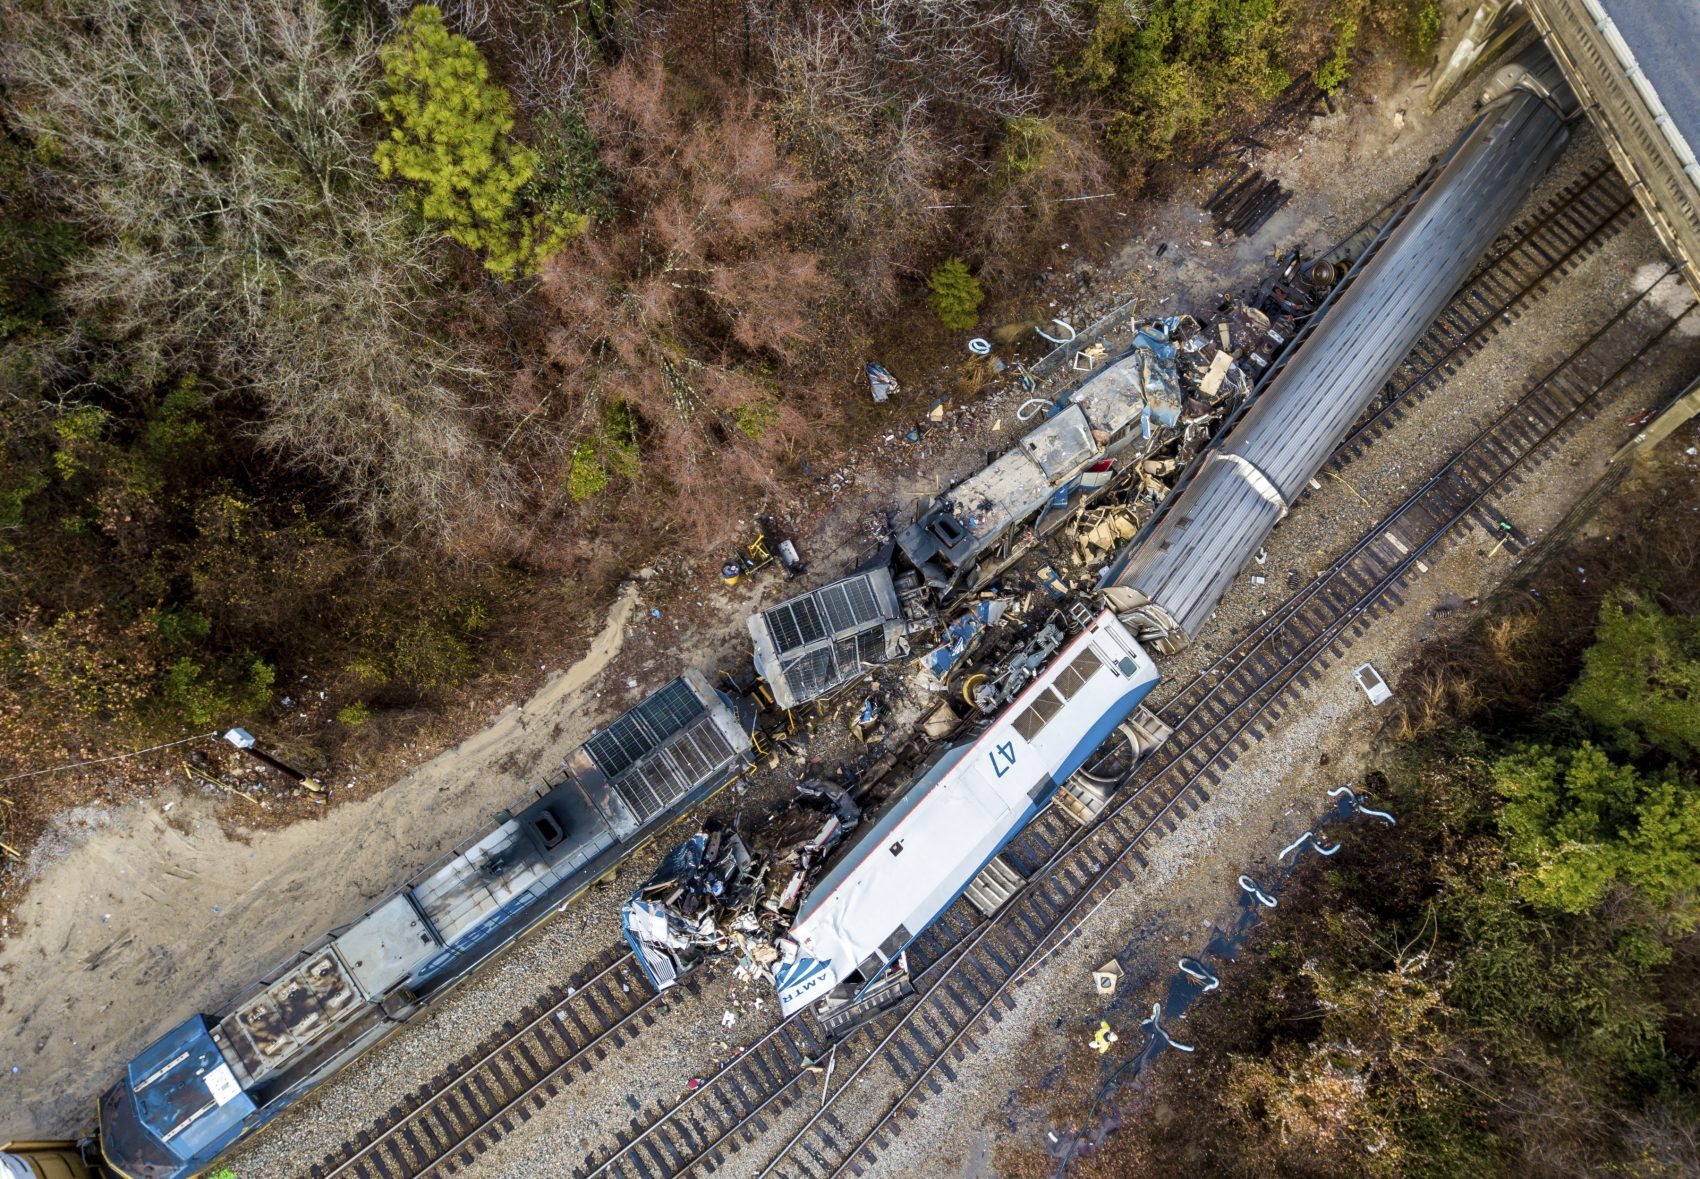 An aerial view of the site of an early morning train crash Sunday, Feb. 4, 2018 between an Amtrak train, bottom right, and a CSX freight train, top left, in Cayce, SC. The Amtrak passenger train slammed into a freight train in the early morning darkness Sunday, killing at least two Amtrak crew members and injuring more than 110 people, authorities said. (Jeff Blake/AP)